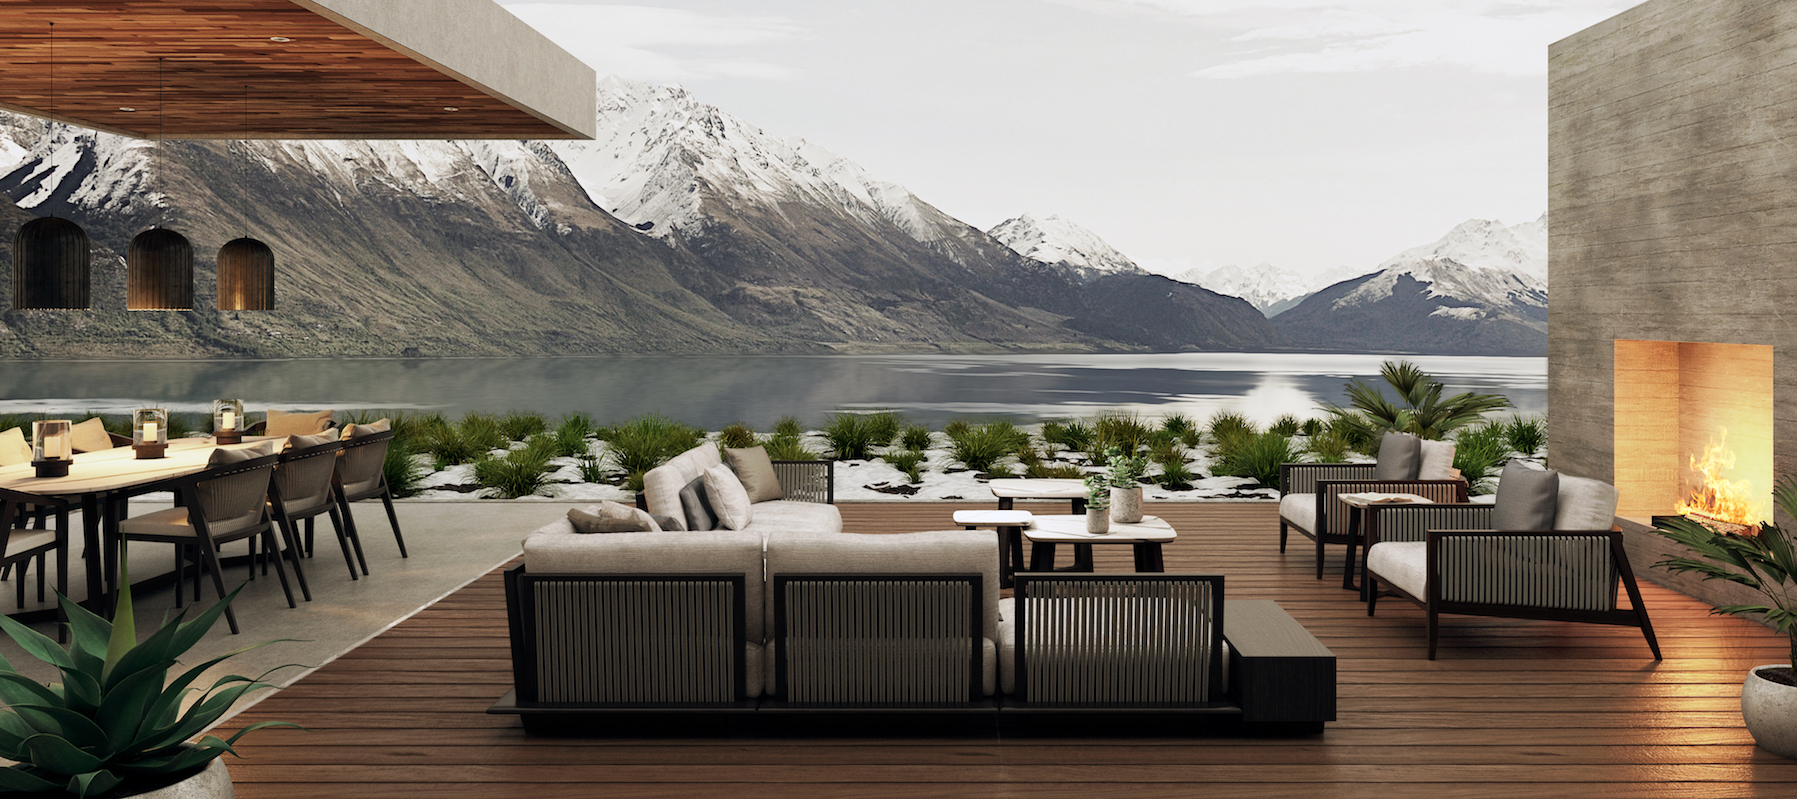 Fabulous Luxury Outdoor Furniture Luxury Commercial Furniture Beatyapartments Chair Design Images Beatyapartmentscom